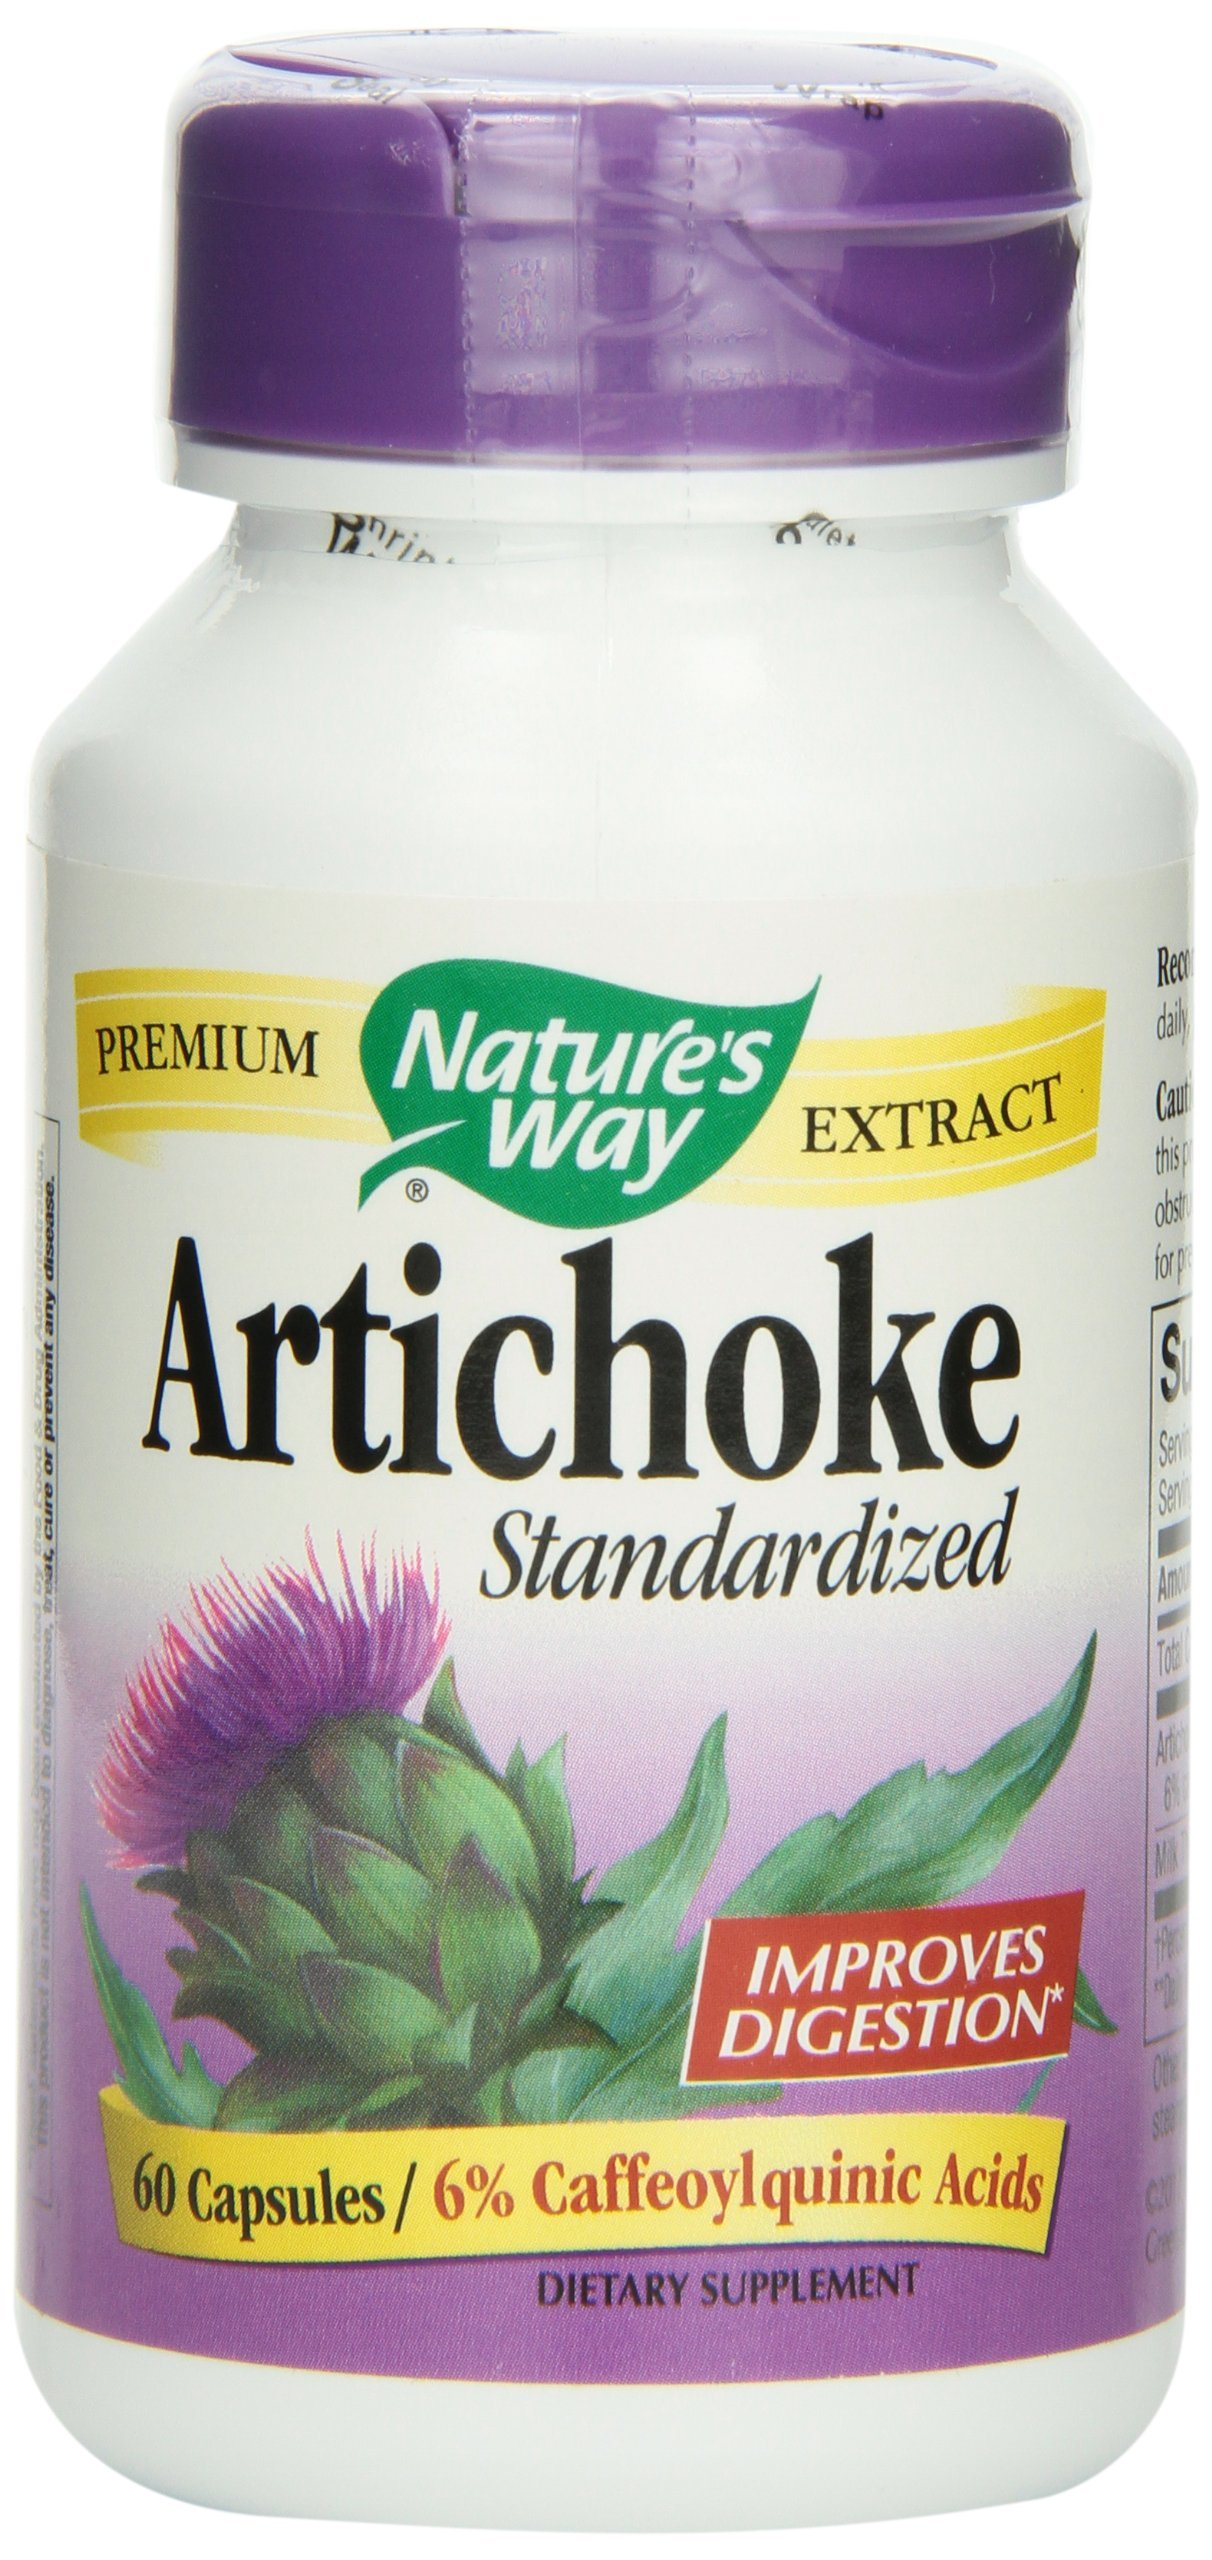 Natures Way, Artichoke Standardized Extract, 60 Capsules